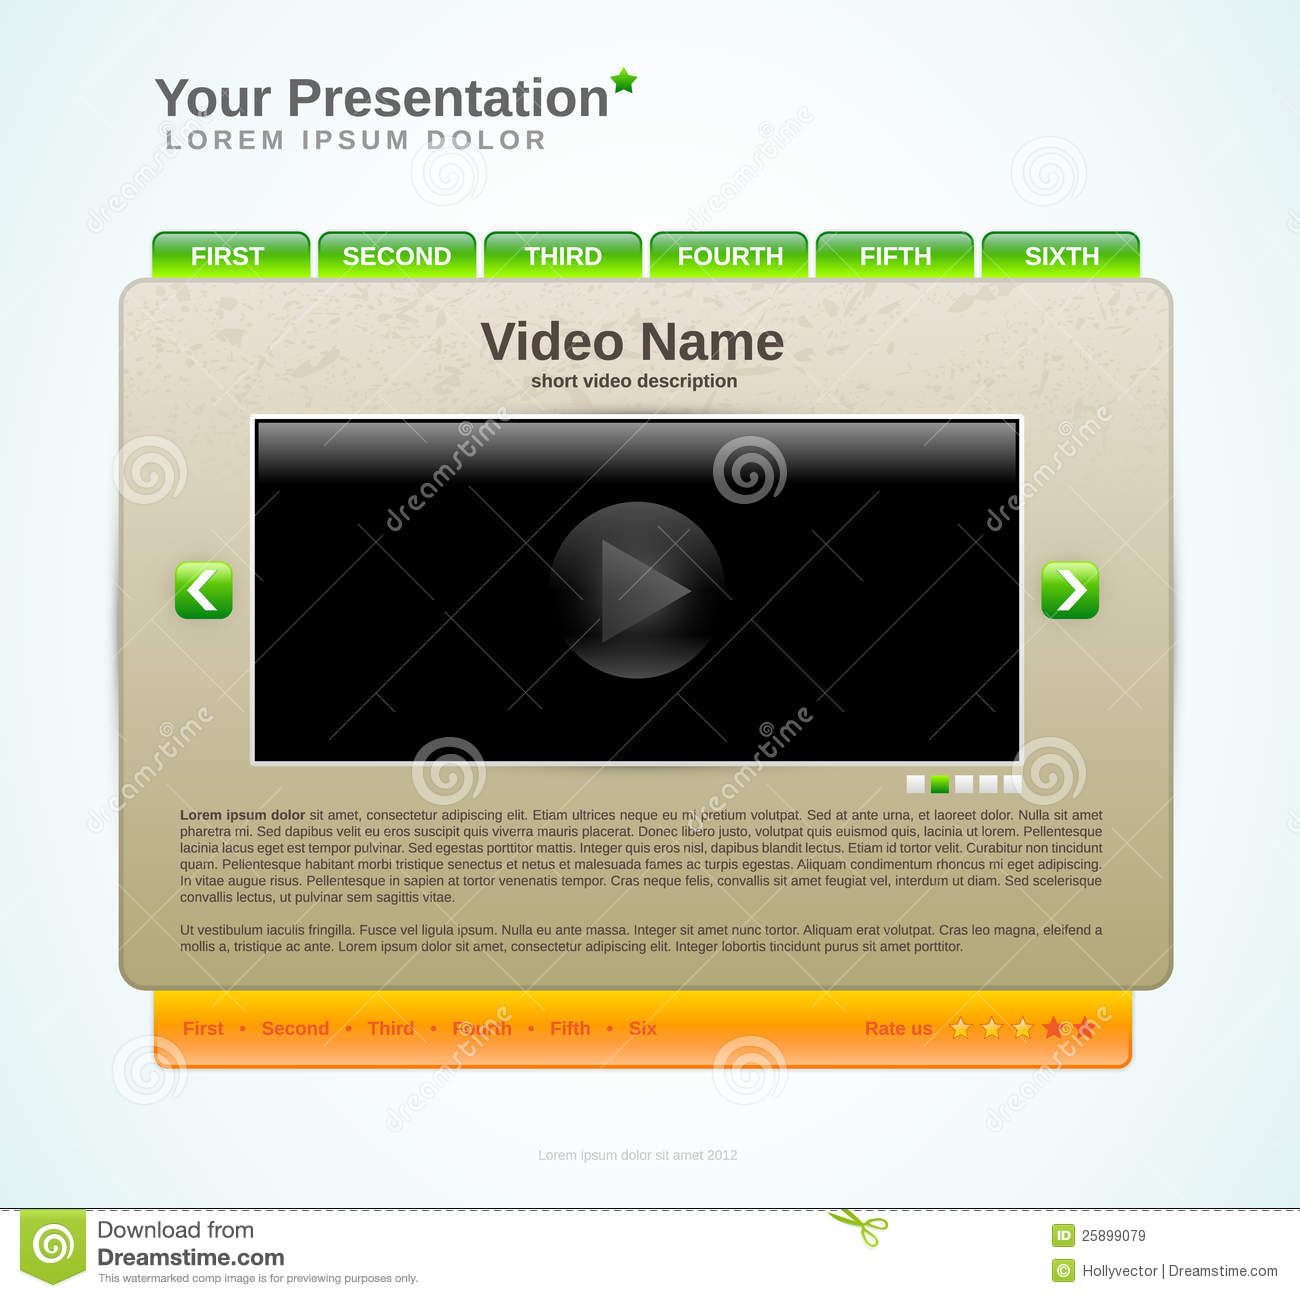 Example presentation dating site